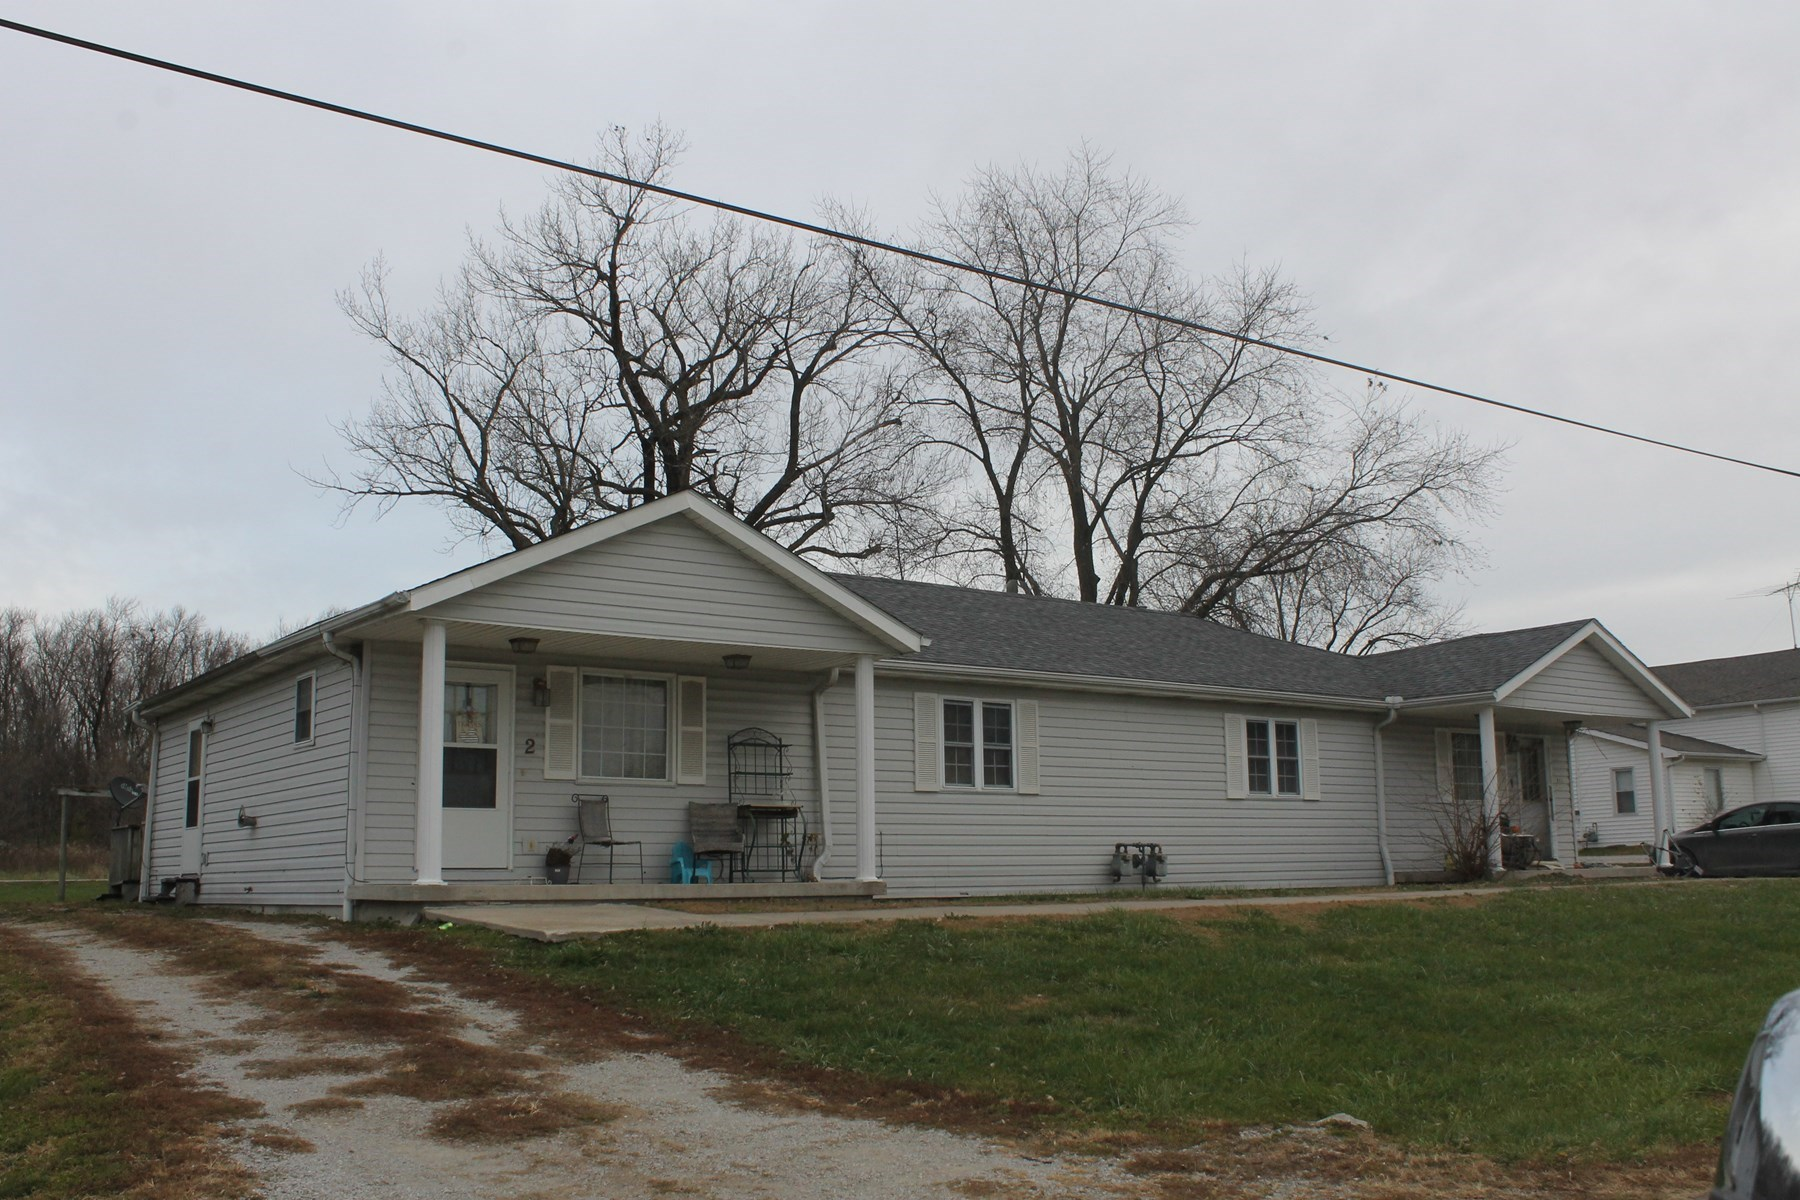 INVESTMENT OPPORTUNITY - HAMILTON MO DUPLEXES FOR SALE